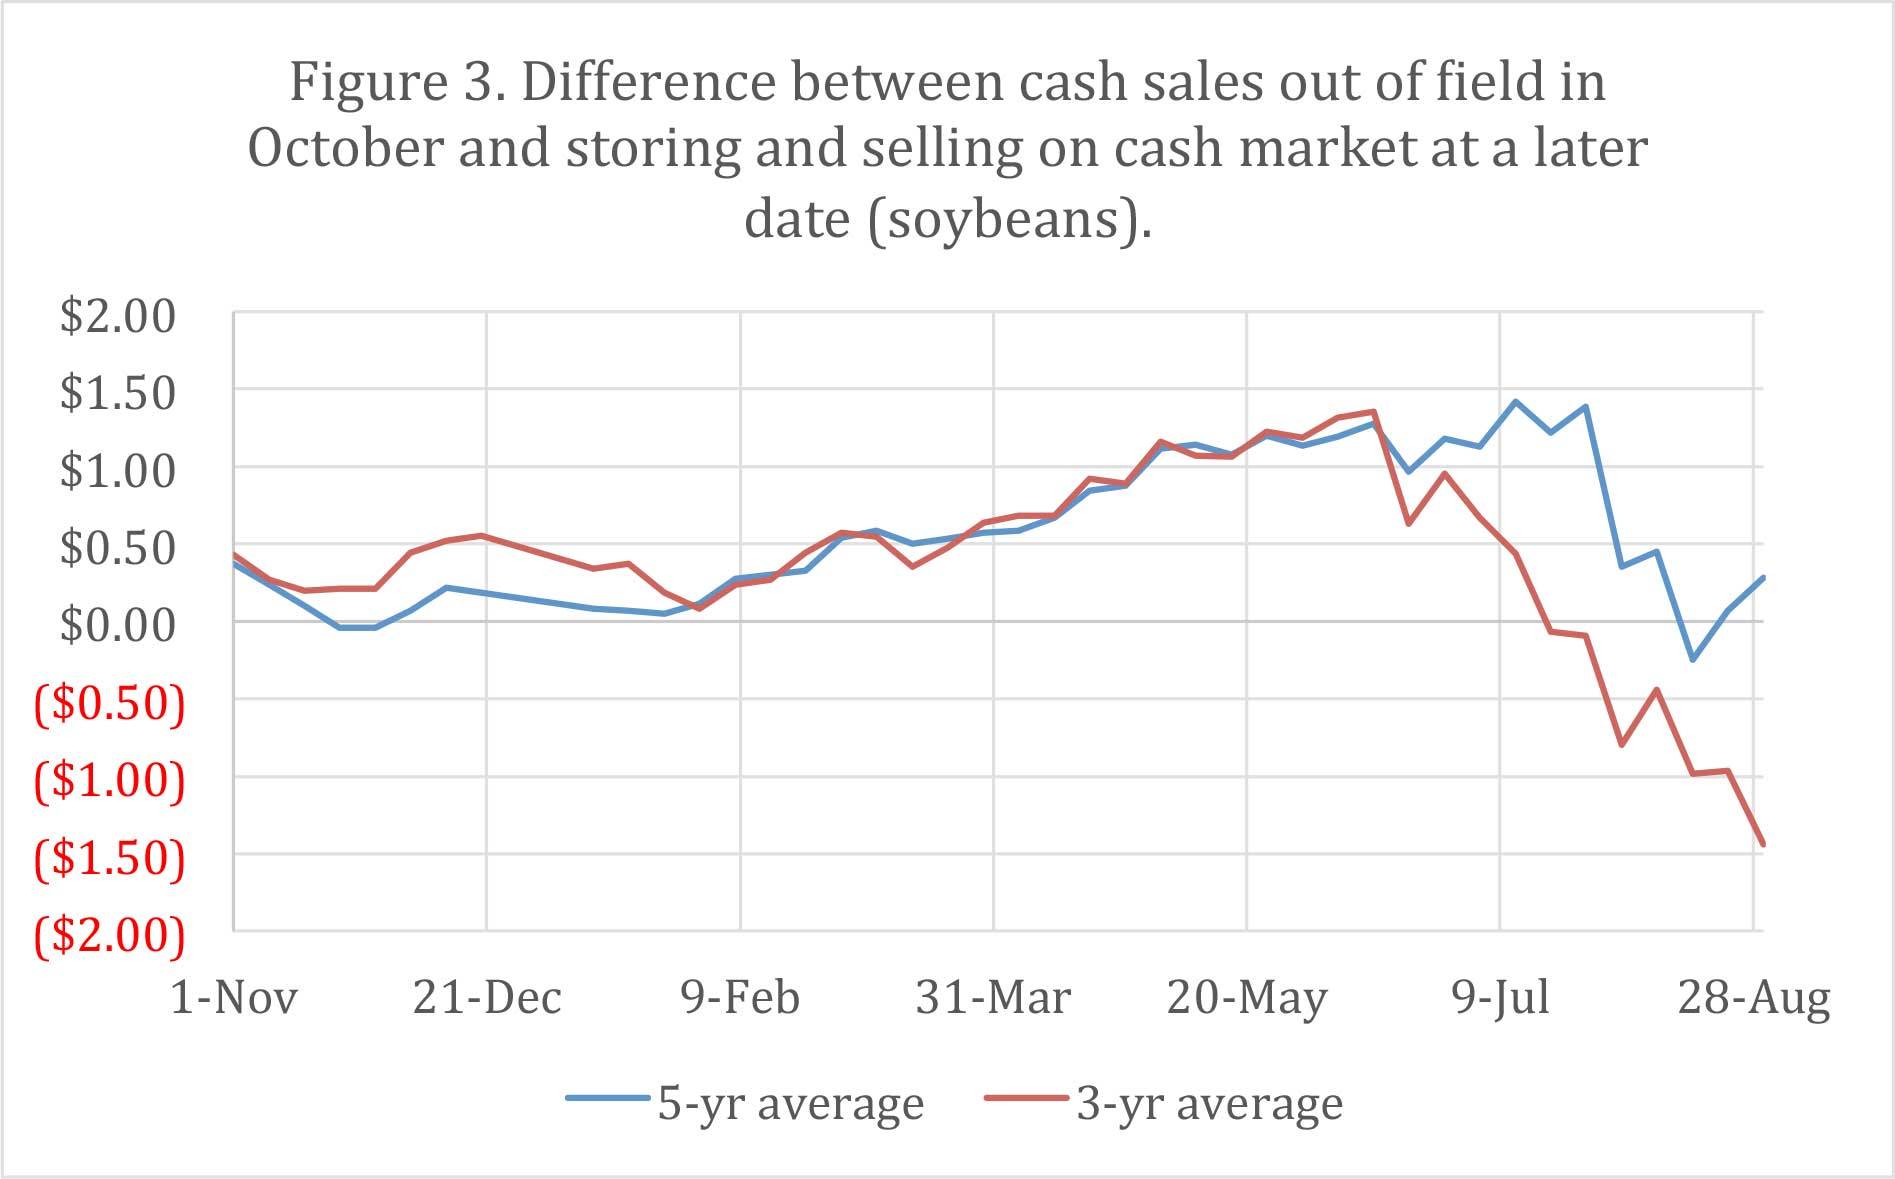 Figure 3. Difference between cash sales out of Field in October and storing and selling on cash market at a later date (soybeans).